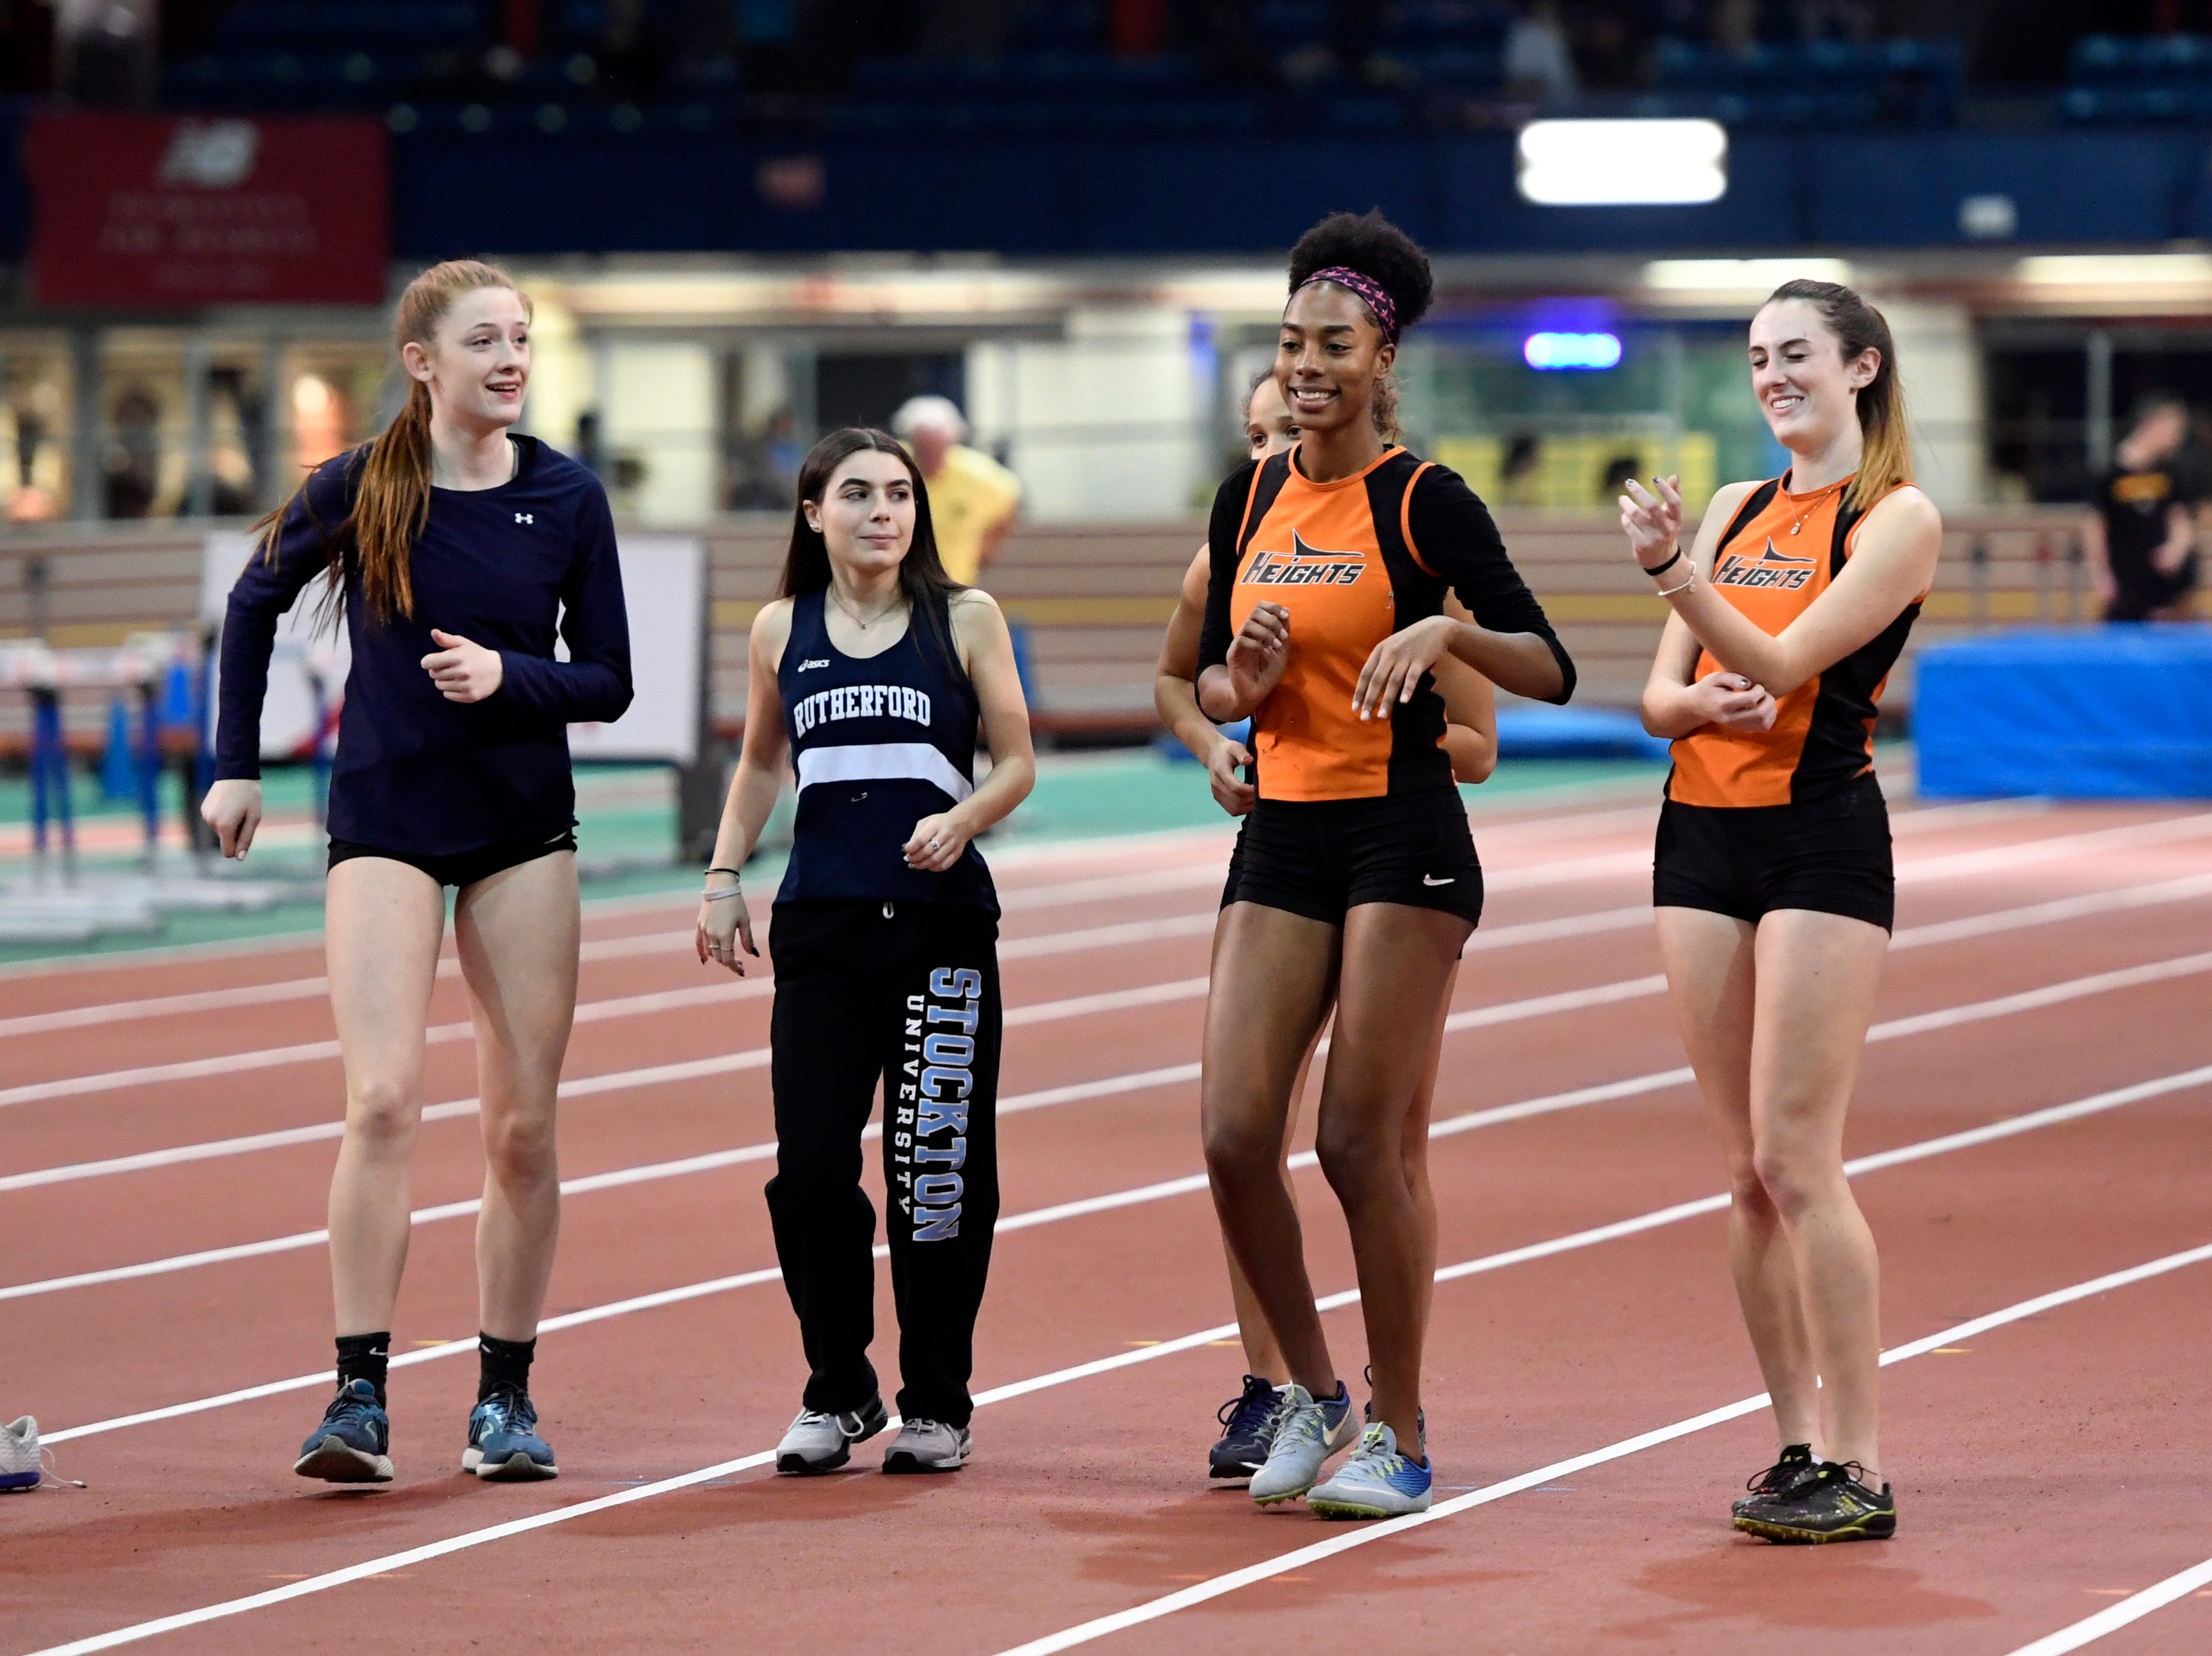 Rutherford and Hasbrouck Heights athletes dance in between heats during the NJIC track meet at the Armory Track on Monday, Jan. 7, 2019, in New York.